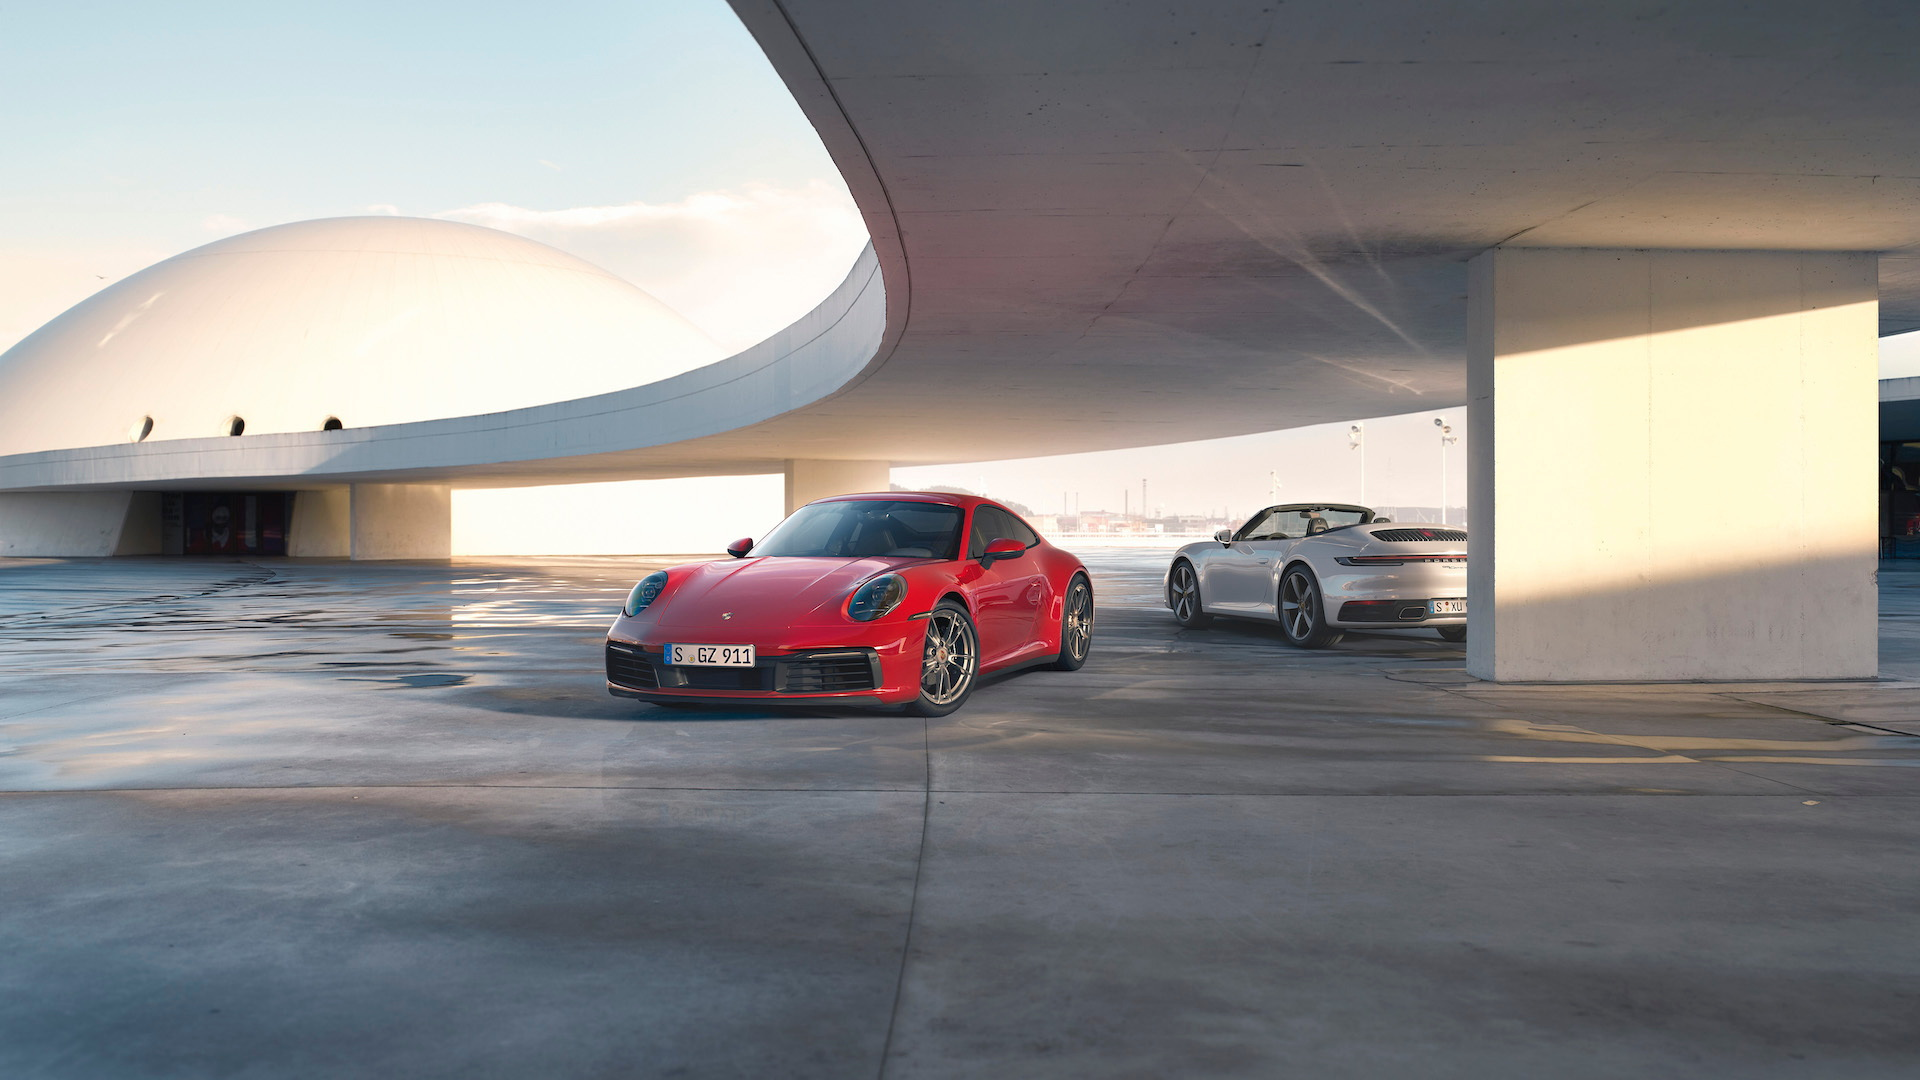 2020 Porsche 911 Carrera 4 and Carrera 4 Cabriolet